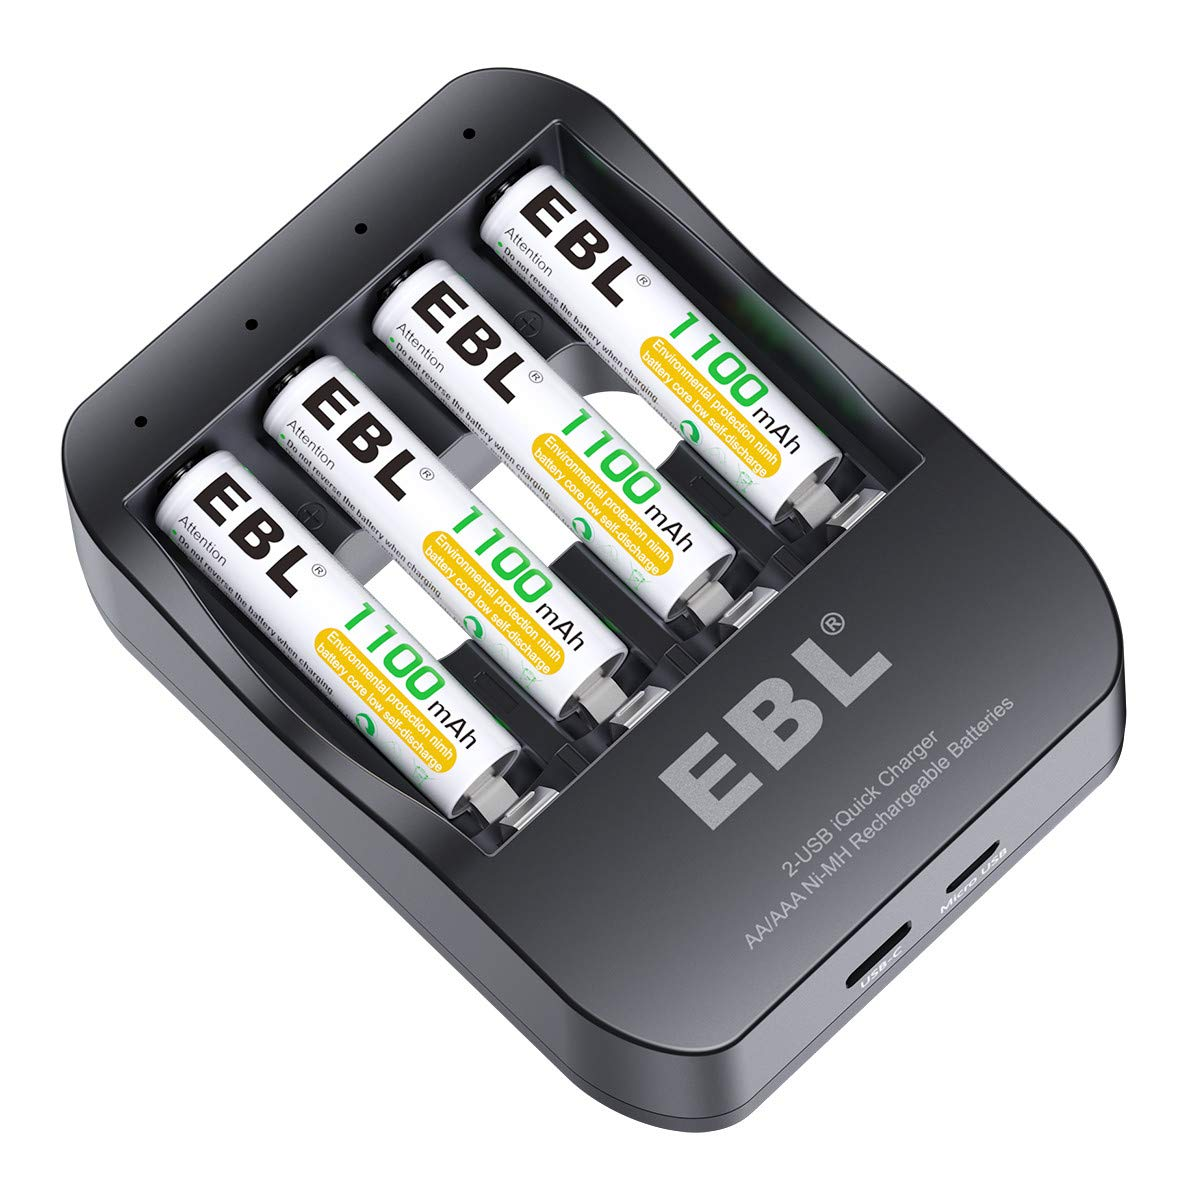 EBL iQuick Battery Charger with 4 Pack AAA Rechargeable Battery Fast Charging for AA AAA Ni-MH Rechargeable Battery CA-64208122